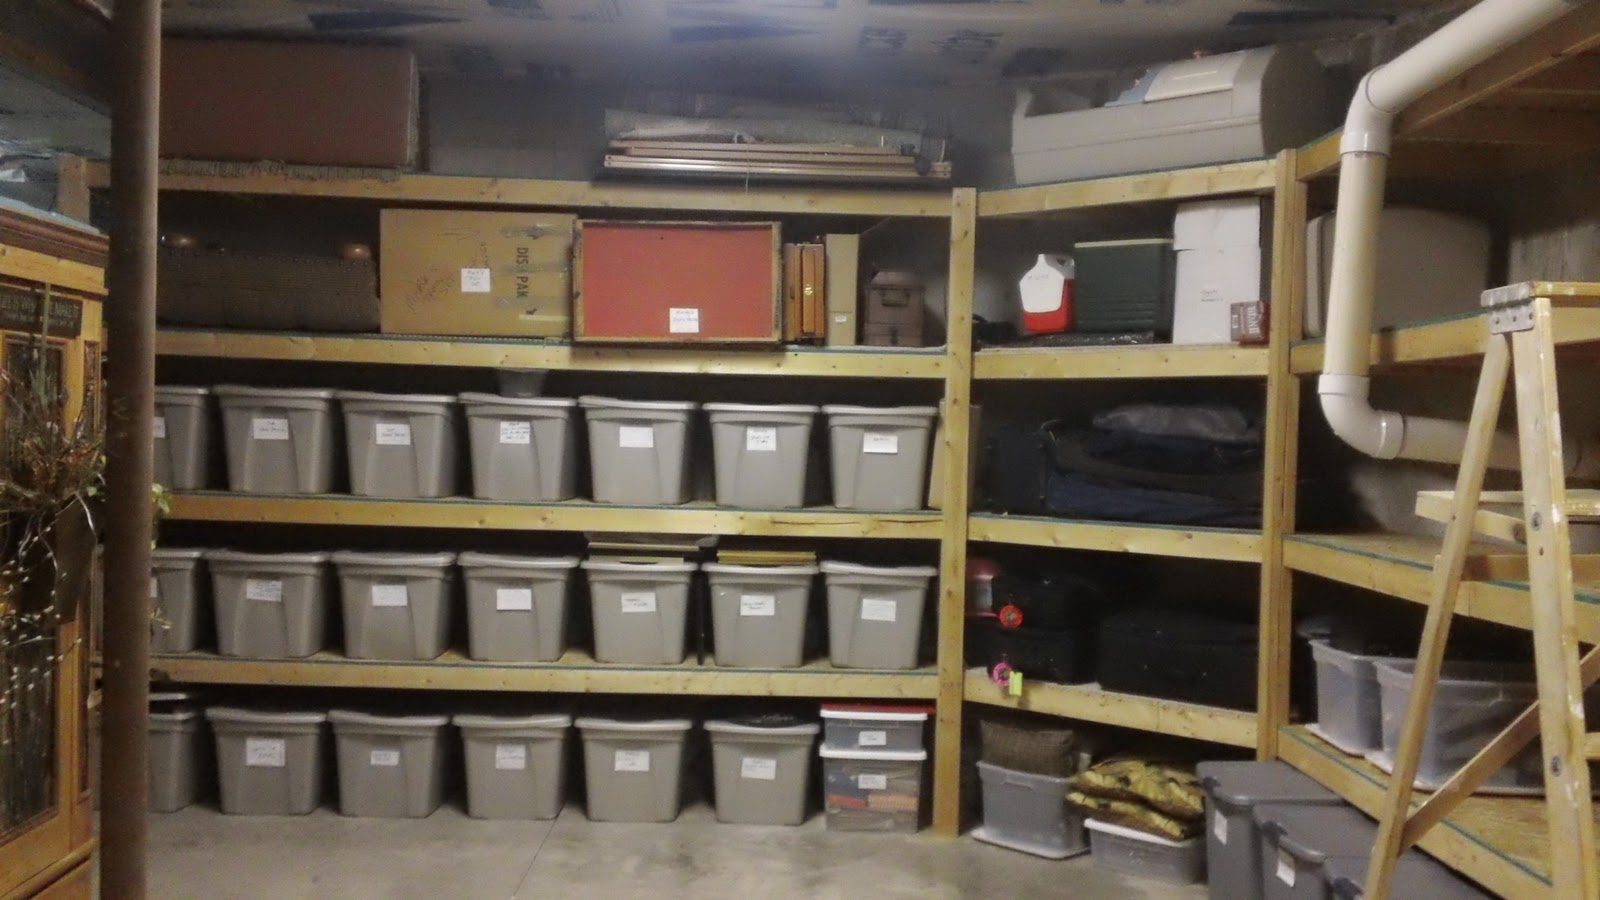 Creative ideas for basement storage in trenton nj for Basement storage ideas